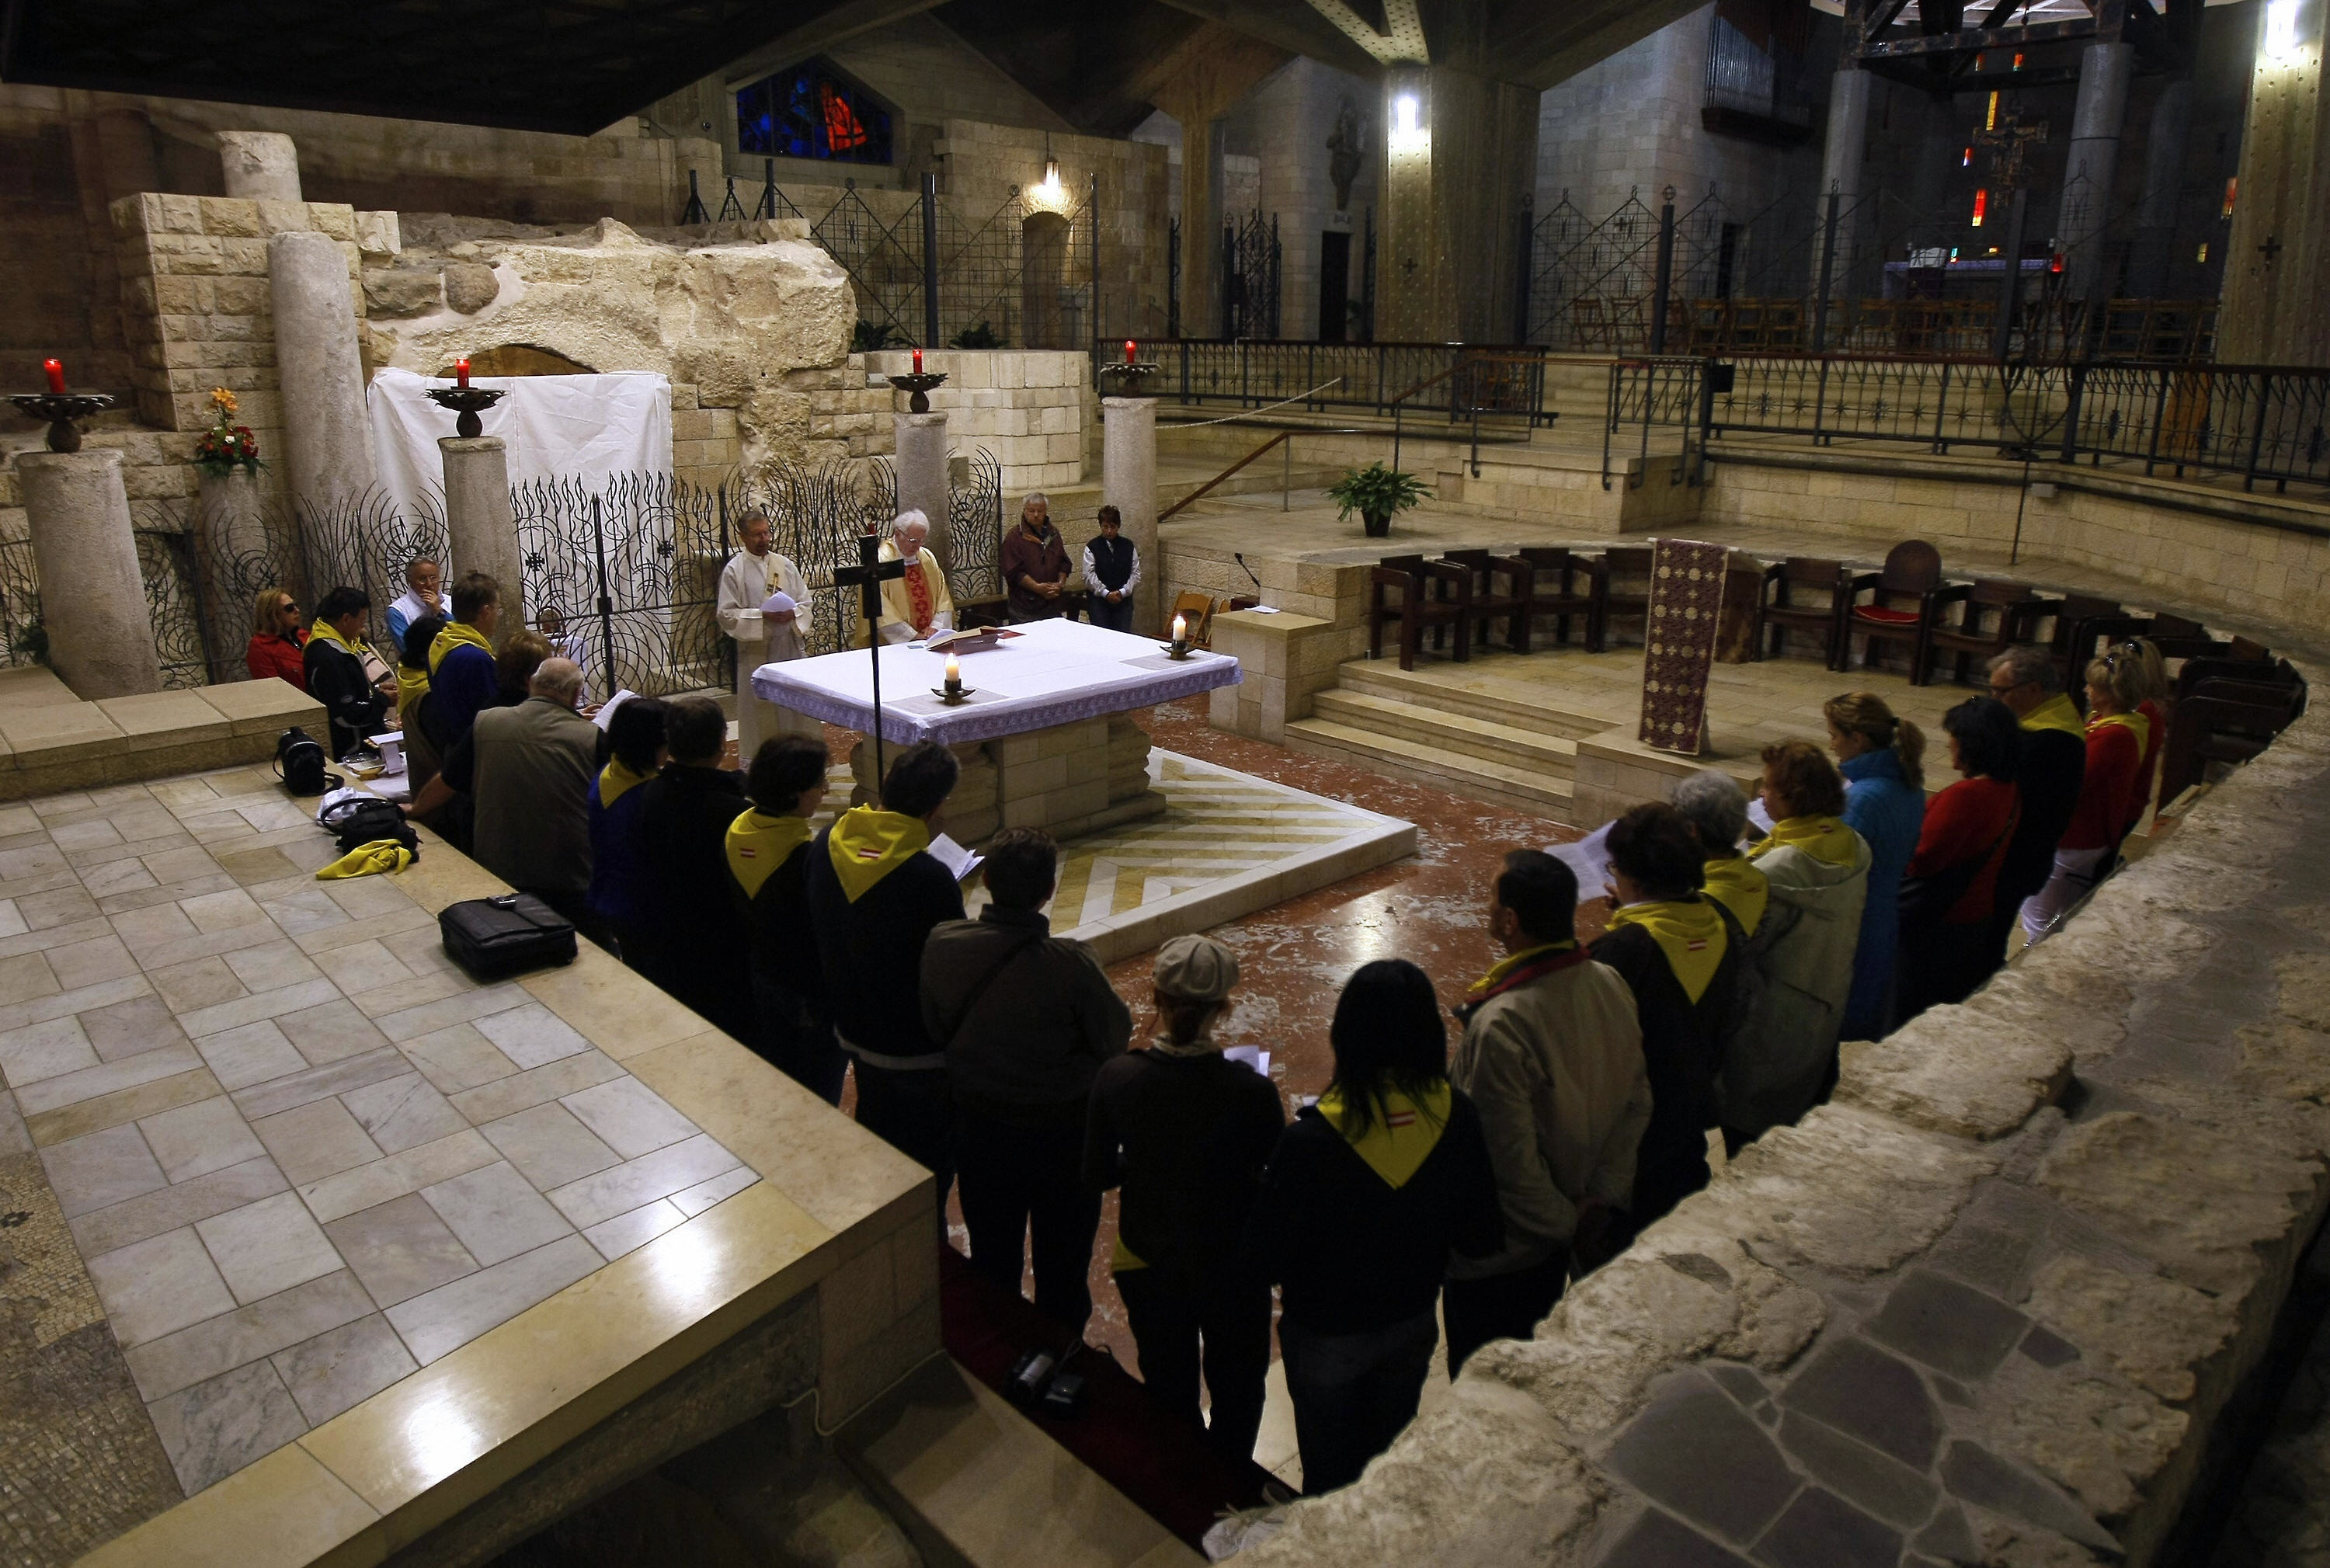 MENAHEM KAHANA/AFP/Getty Images. Christian pilgrims attend Sunday mass at the grotto of the Church of the Annunciation.